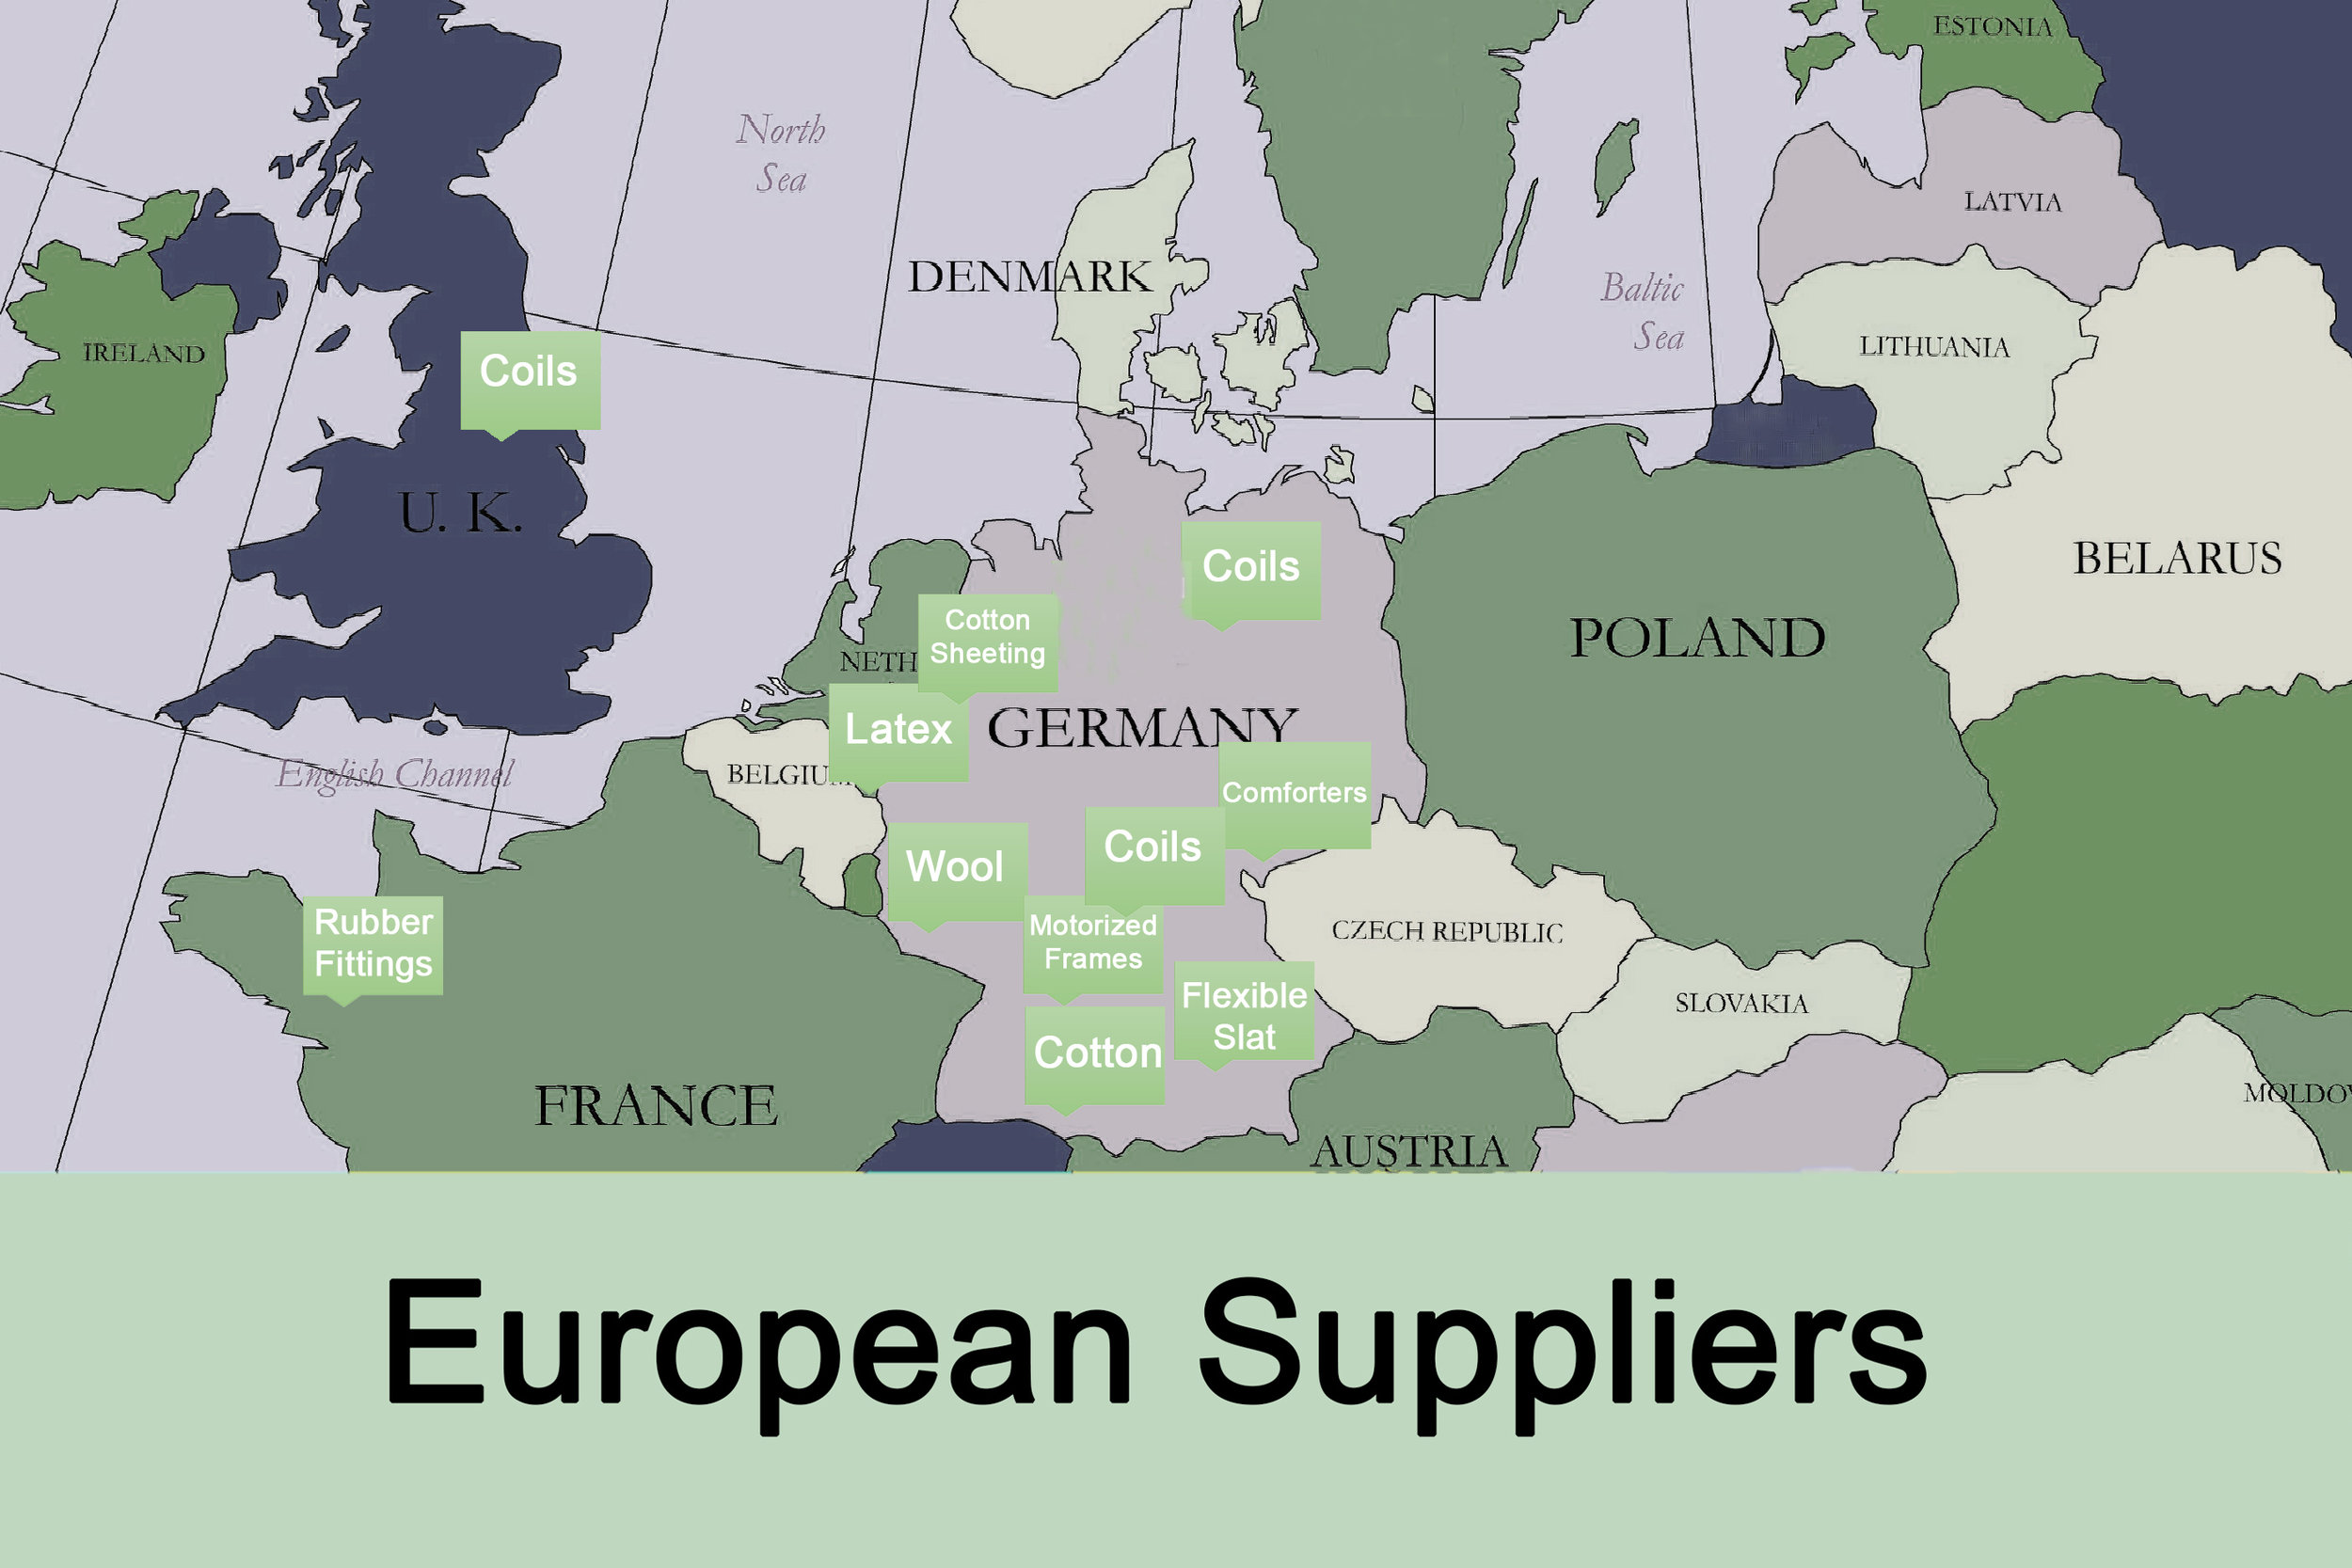 europe - supplier map 2018 - website.jpg